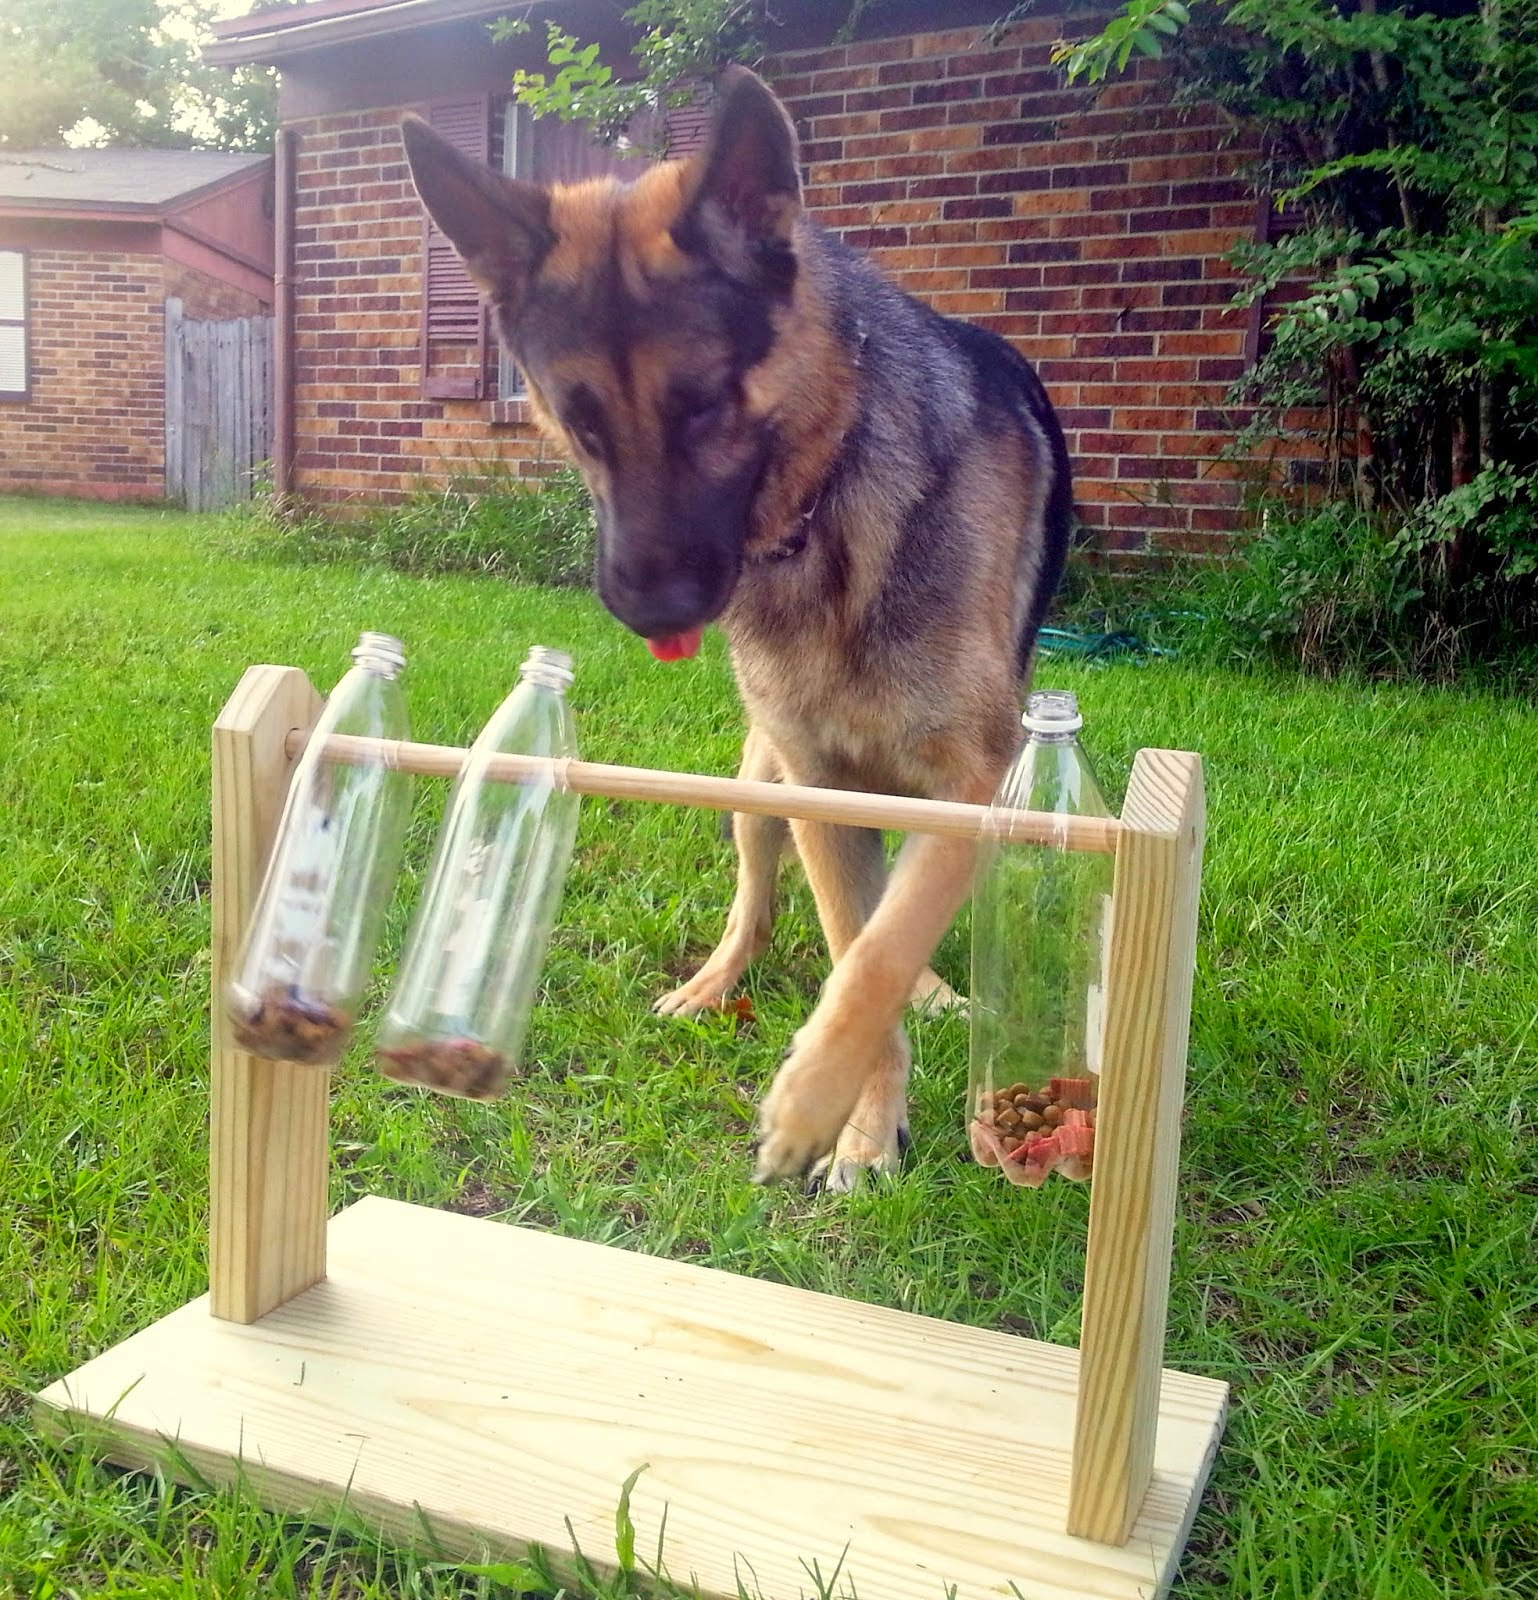 Do it yourself ideas and projects diy dog treat game solutioingenieria Choice Image